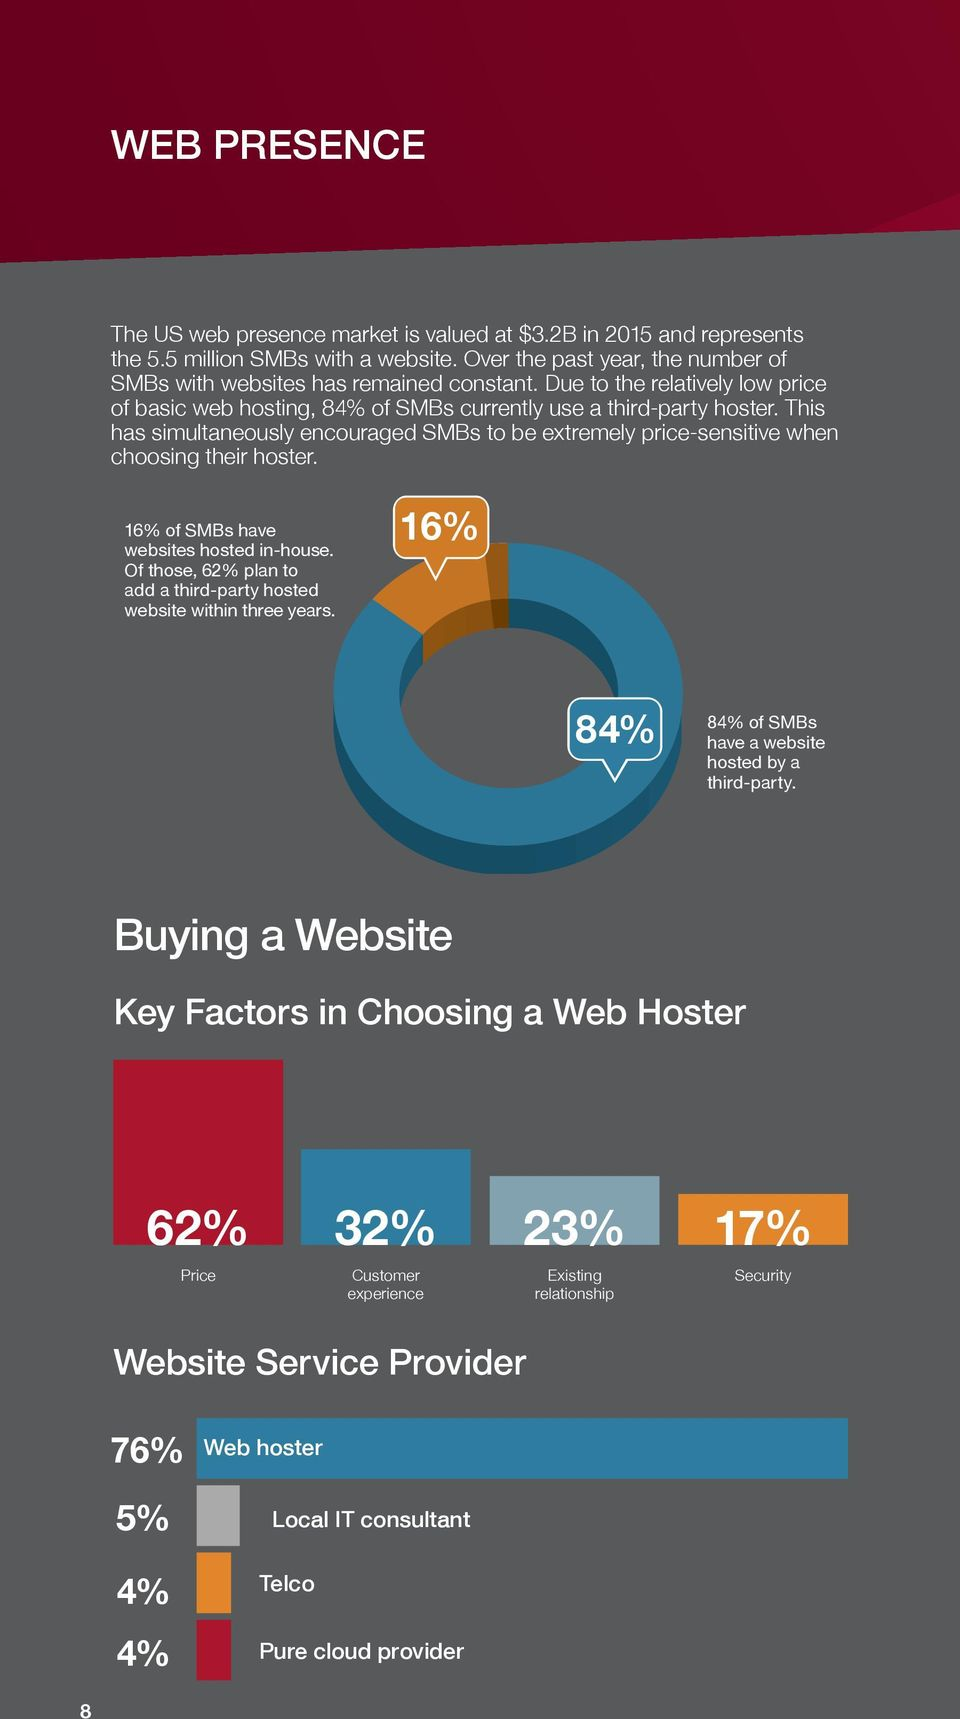 This has simultaneously encouraged SMBs to be extremely price-sensitive when choosing their hoster. 16% of SMBs have websites hosted in-house.